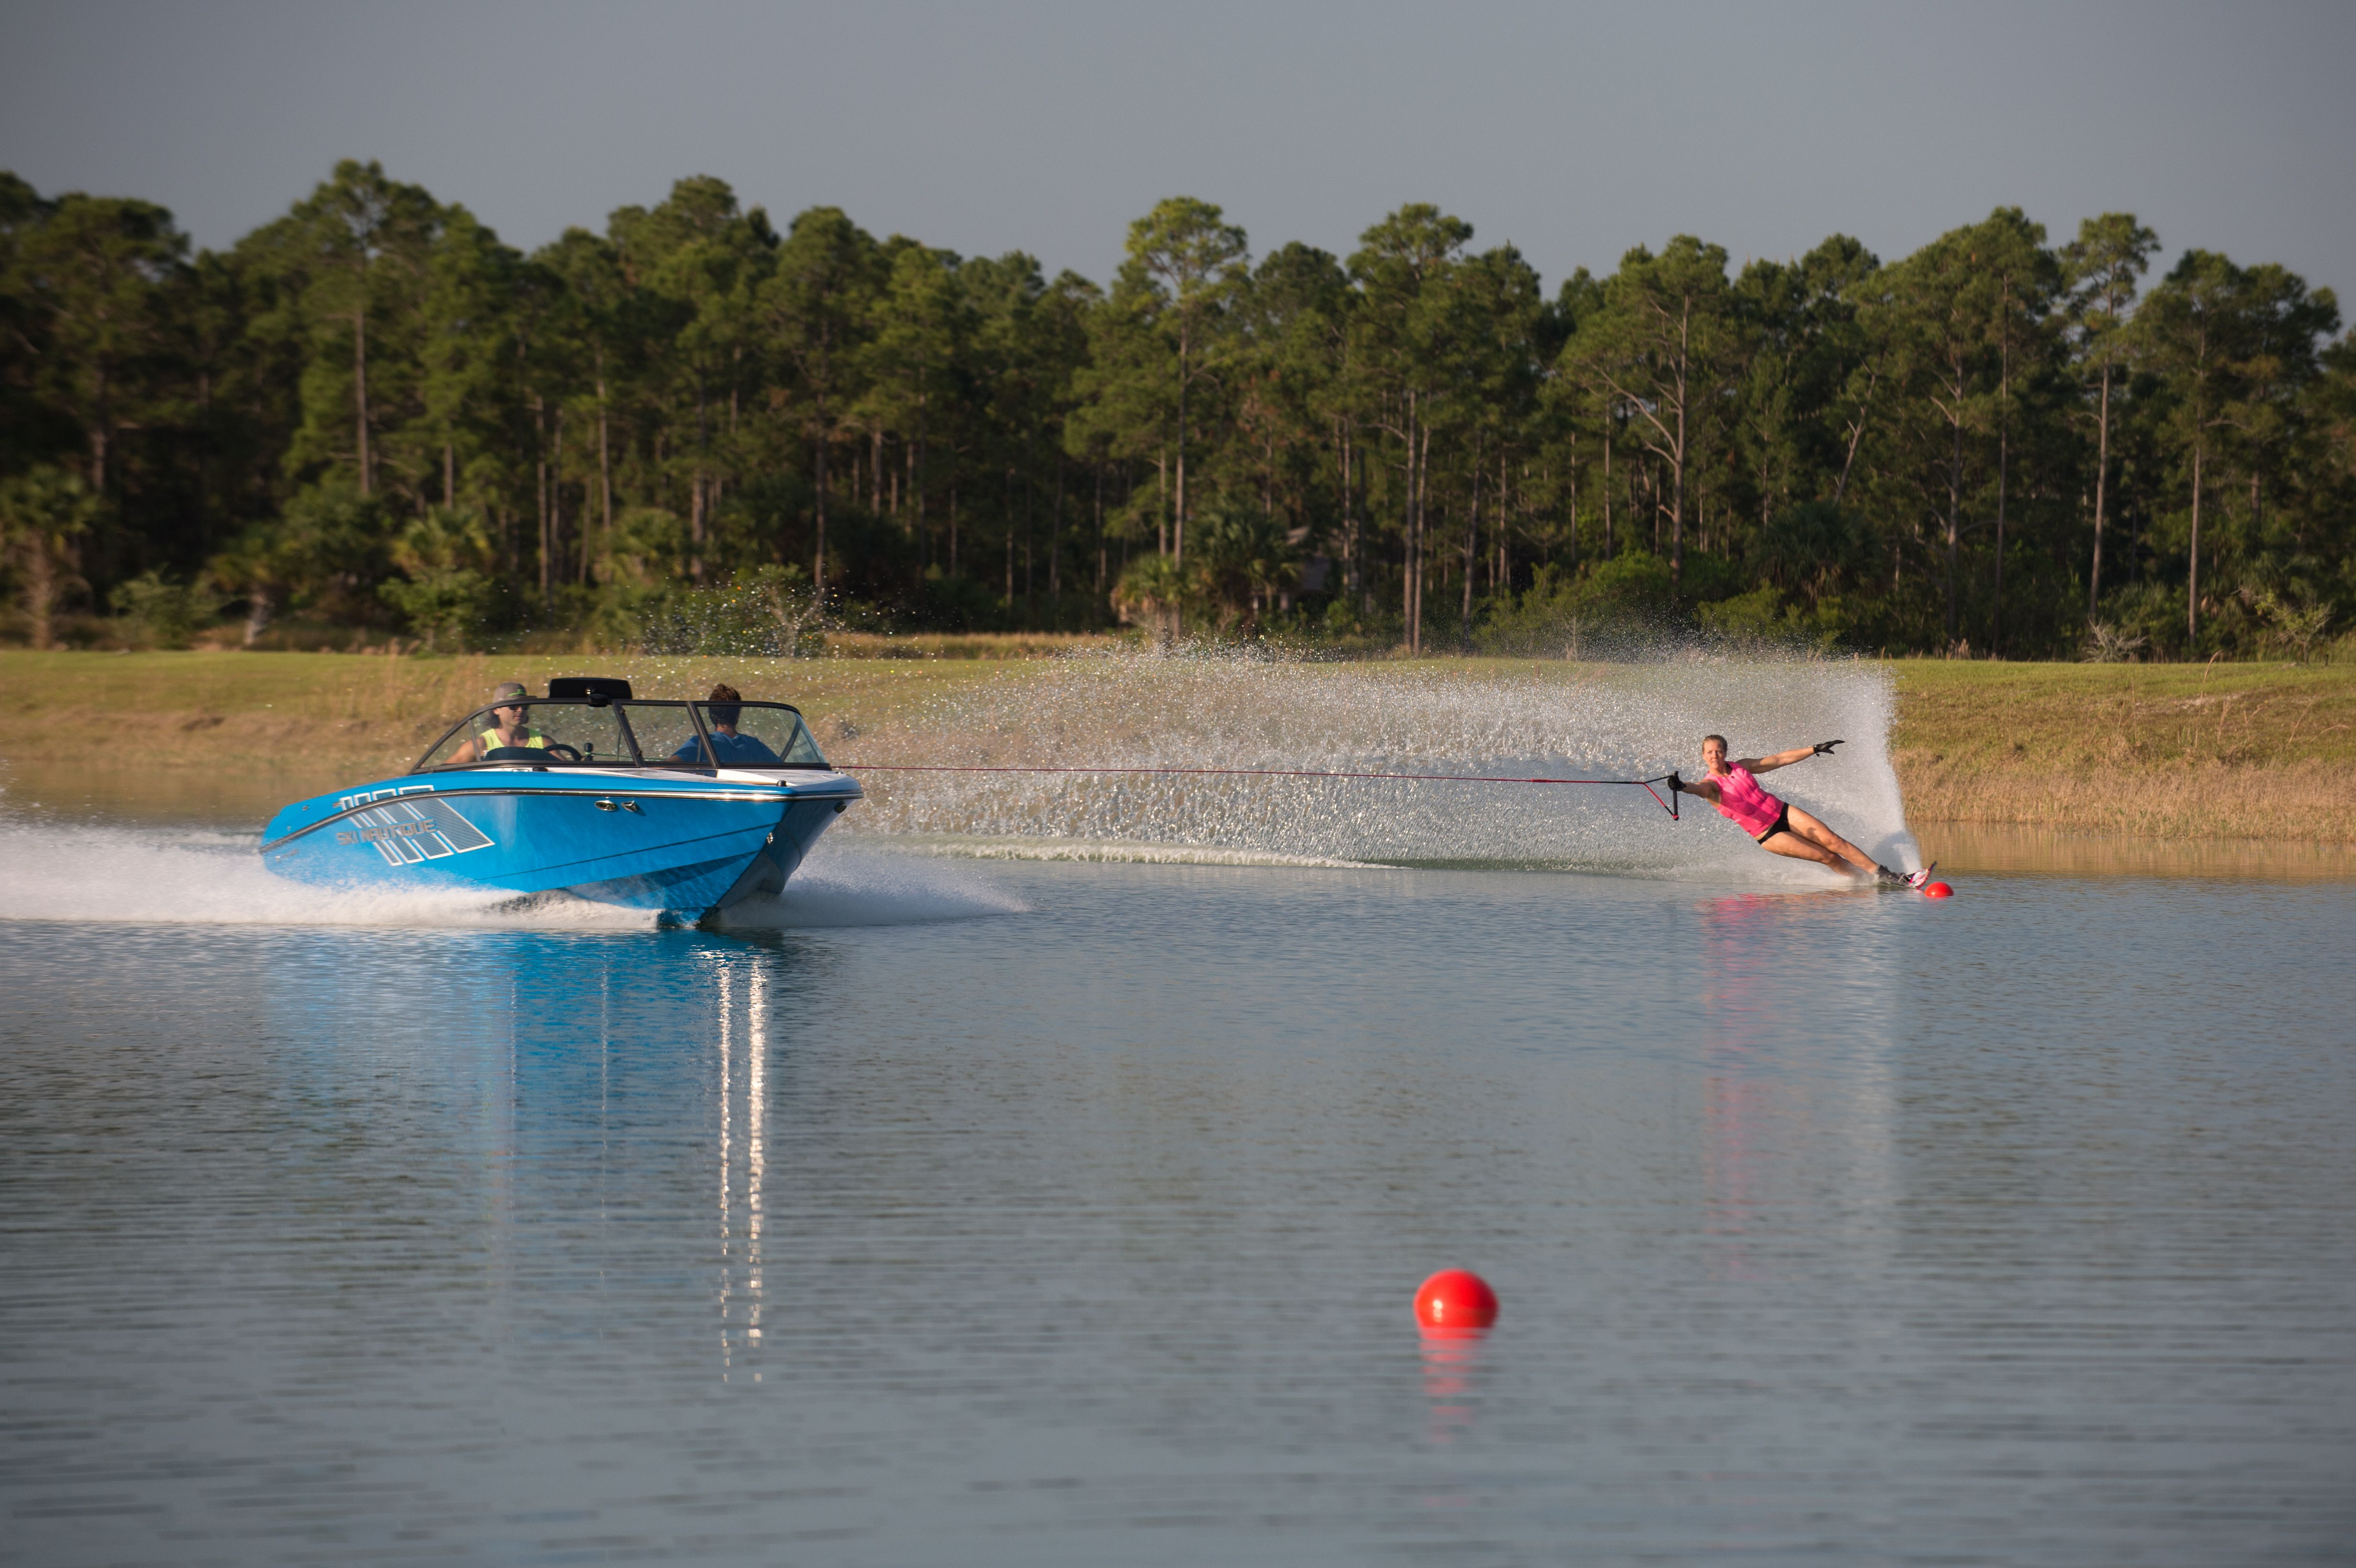 Waterskiing The Course Behind The 2018 Ski Nautique 200 Cb Water Skiing Wakeboard Boats Wakeboarding